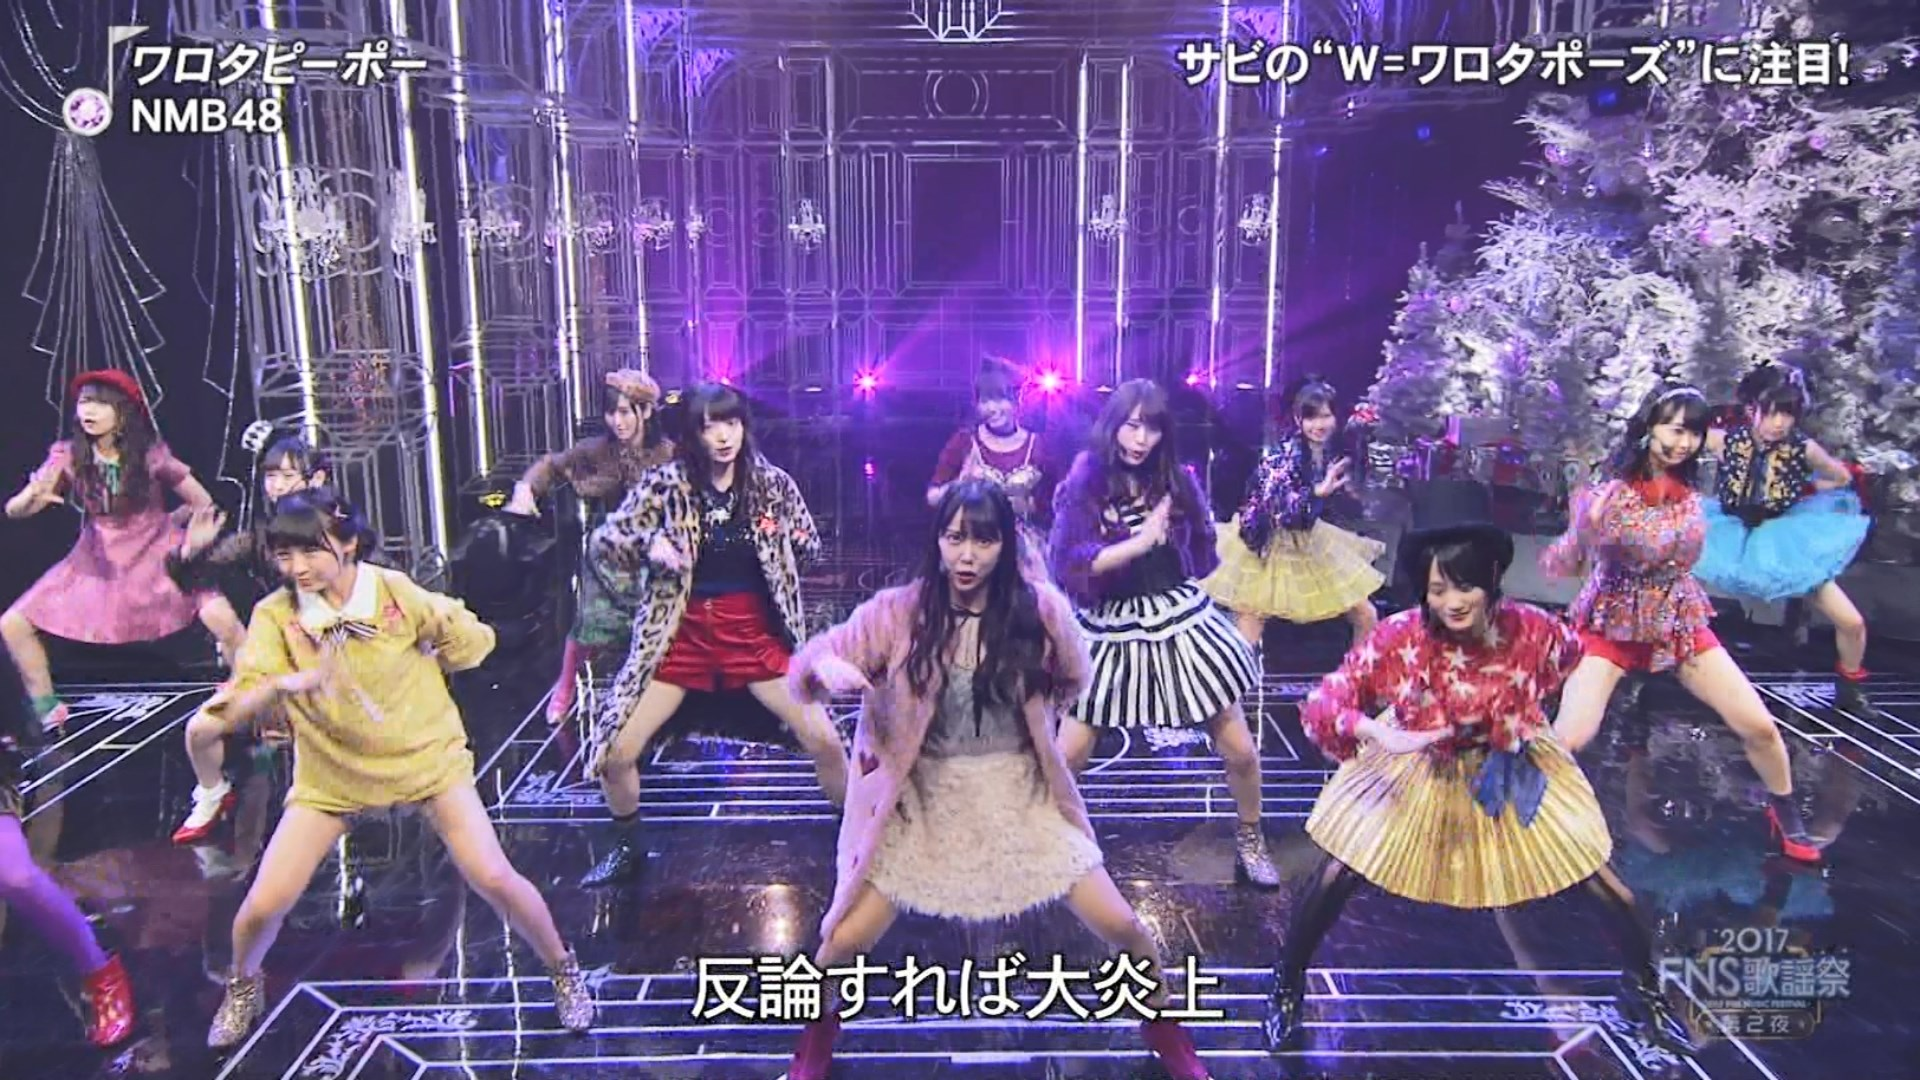 2017FNS歌謡祭第2夜・NMB48ワロタピーポーキャプ-013